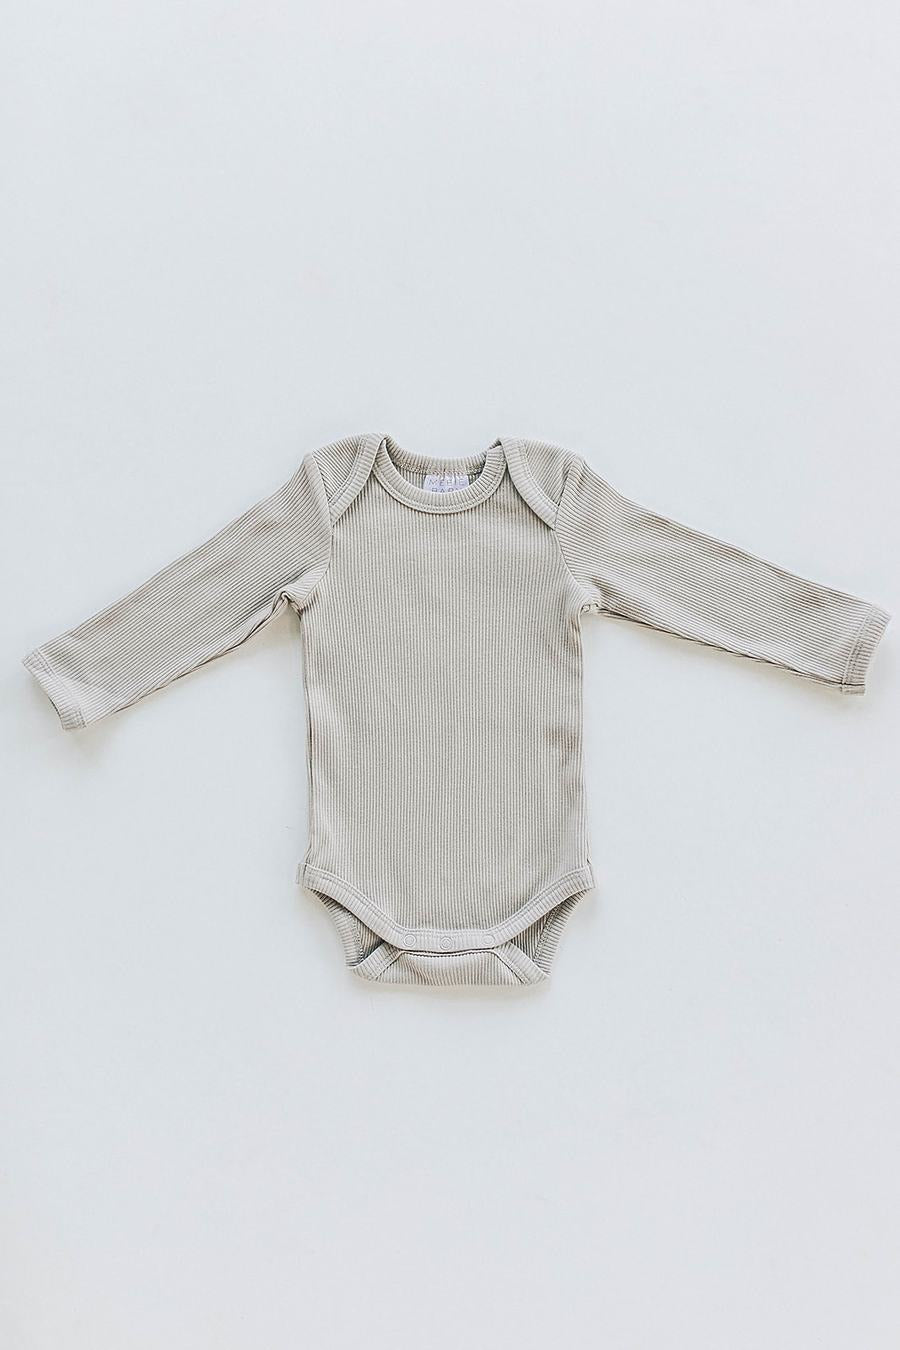 Oatmeal Organic Cotton Long Sleeve Ribbed Bodysuit